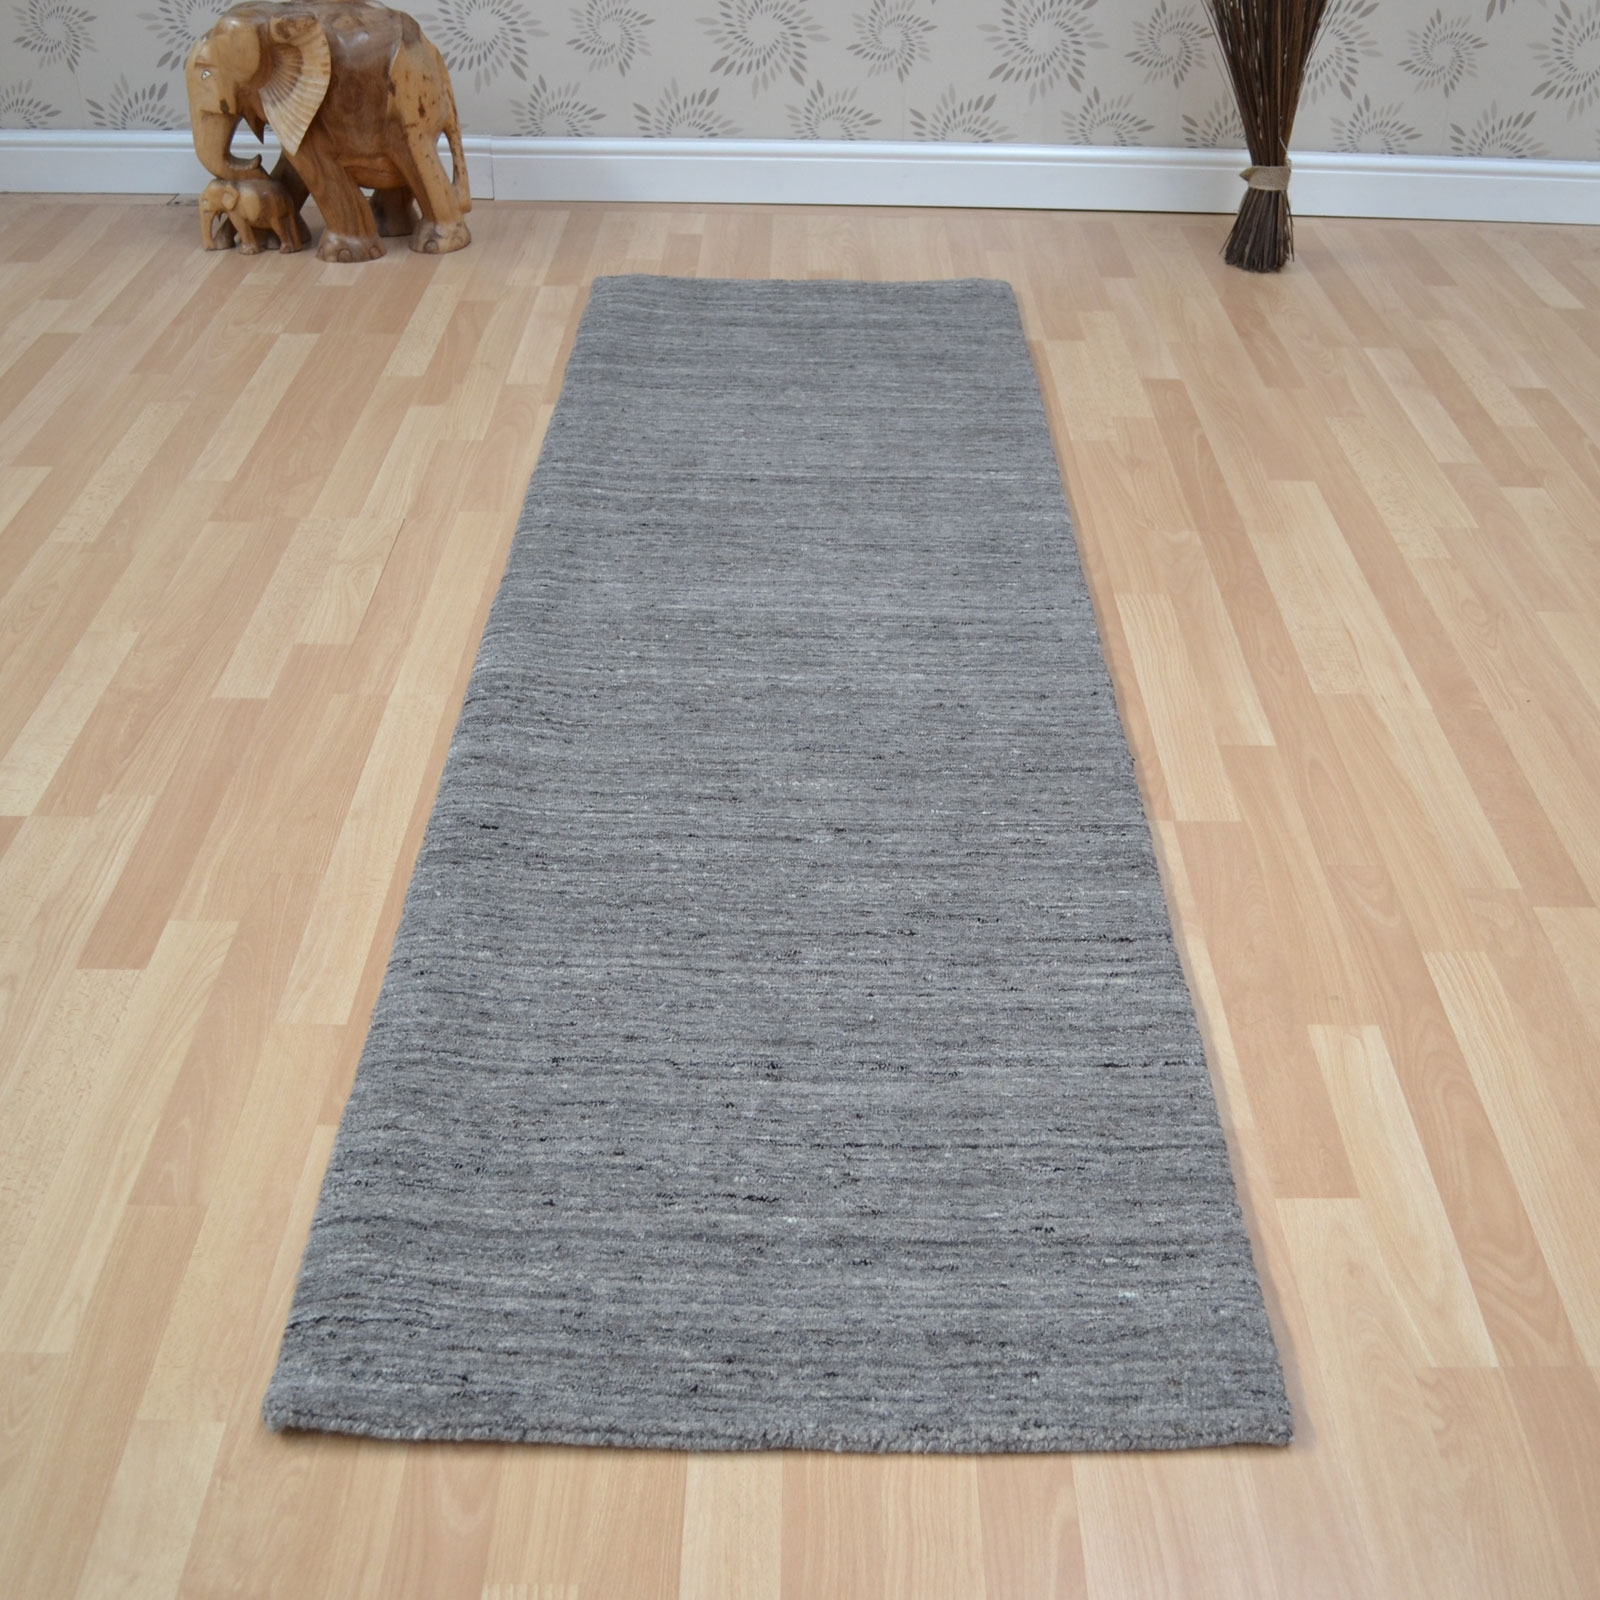 Runner Rug Uk Roselawnlutheran In Striped Runners For Hallways (#17 of 20)